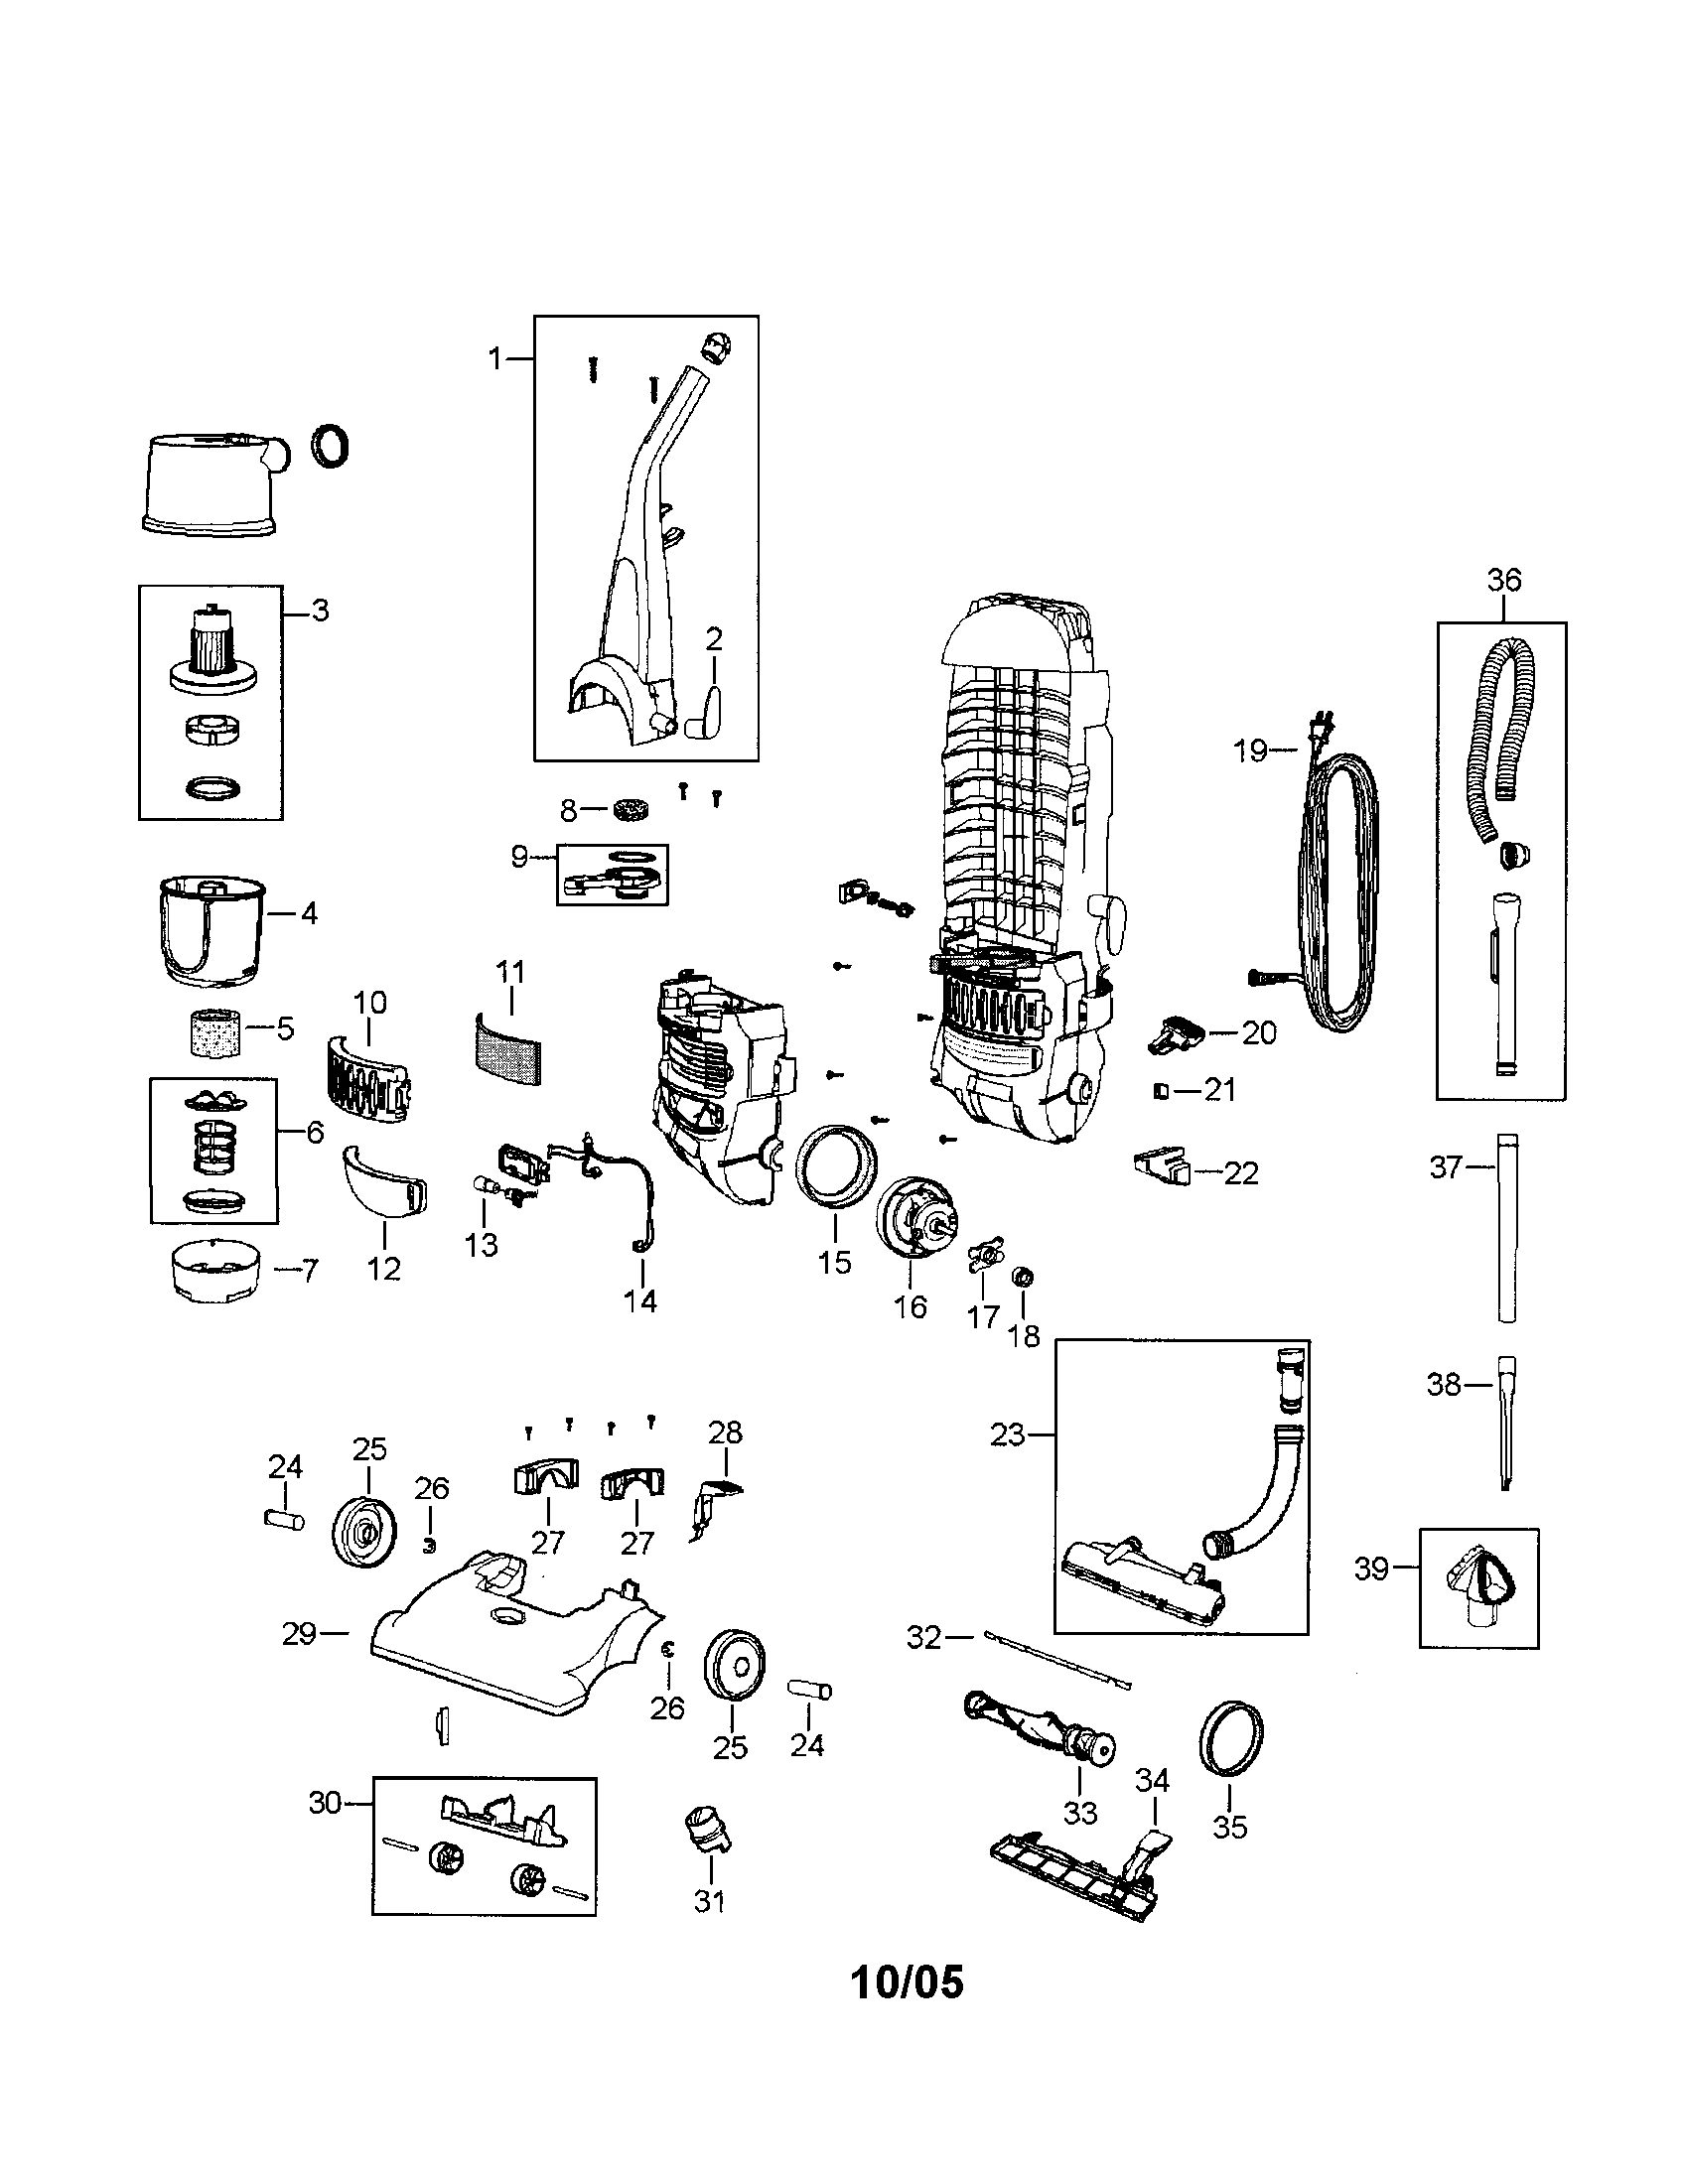 Bissell model 6594 vacuum, upright genuine parts